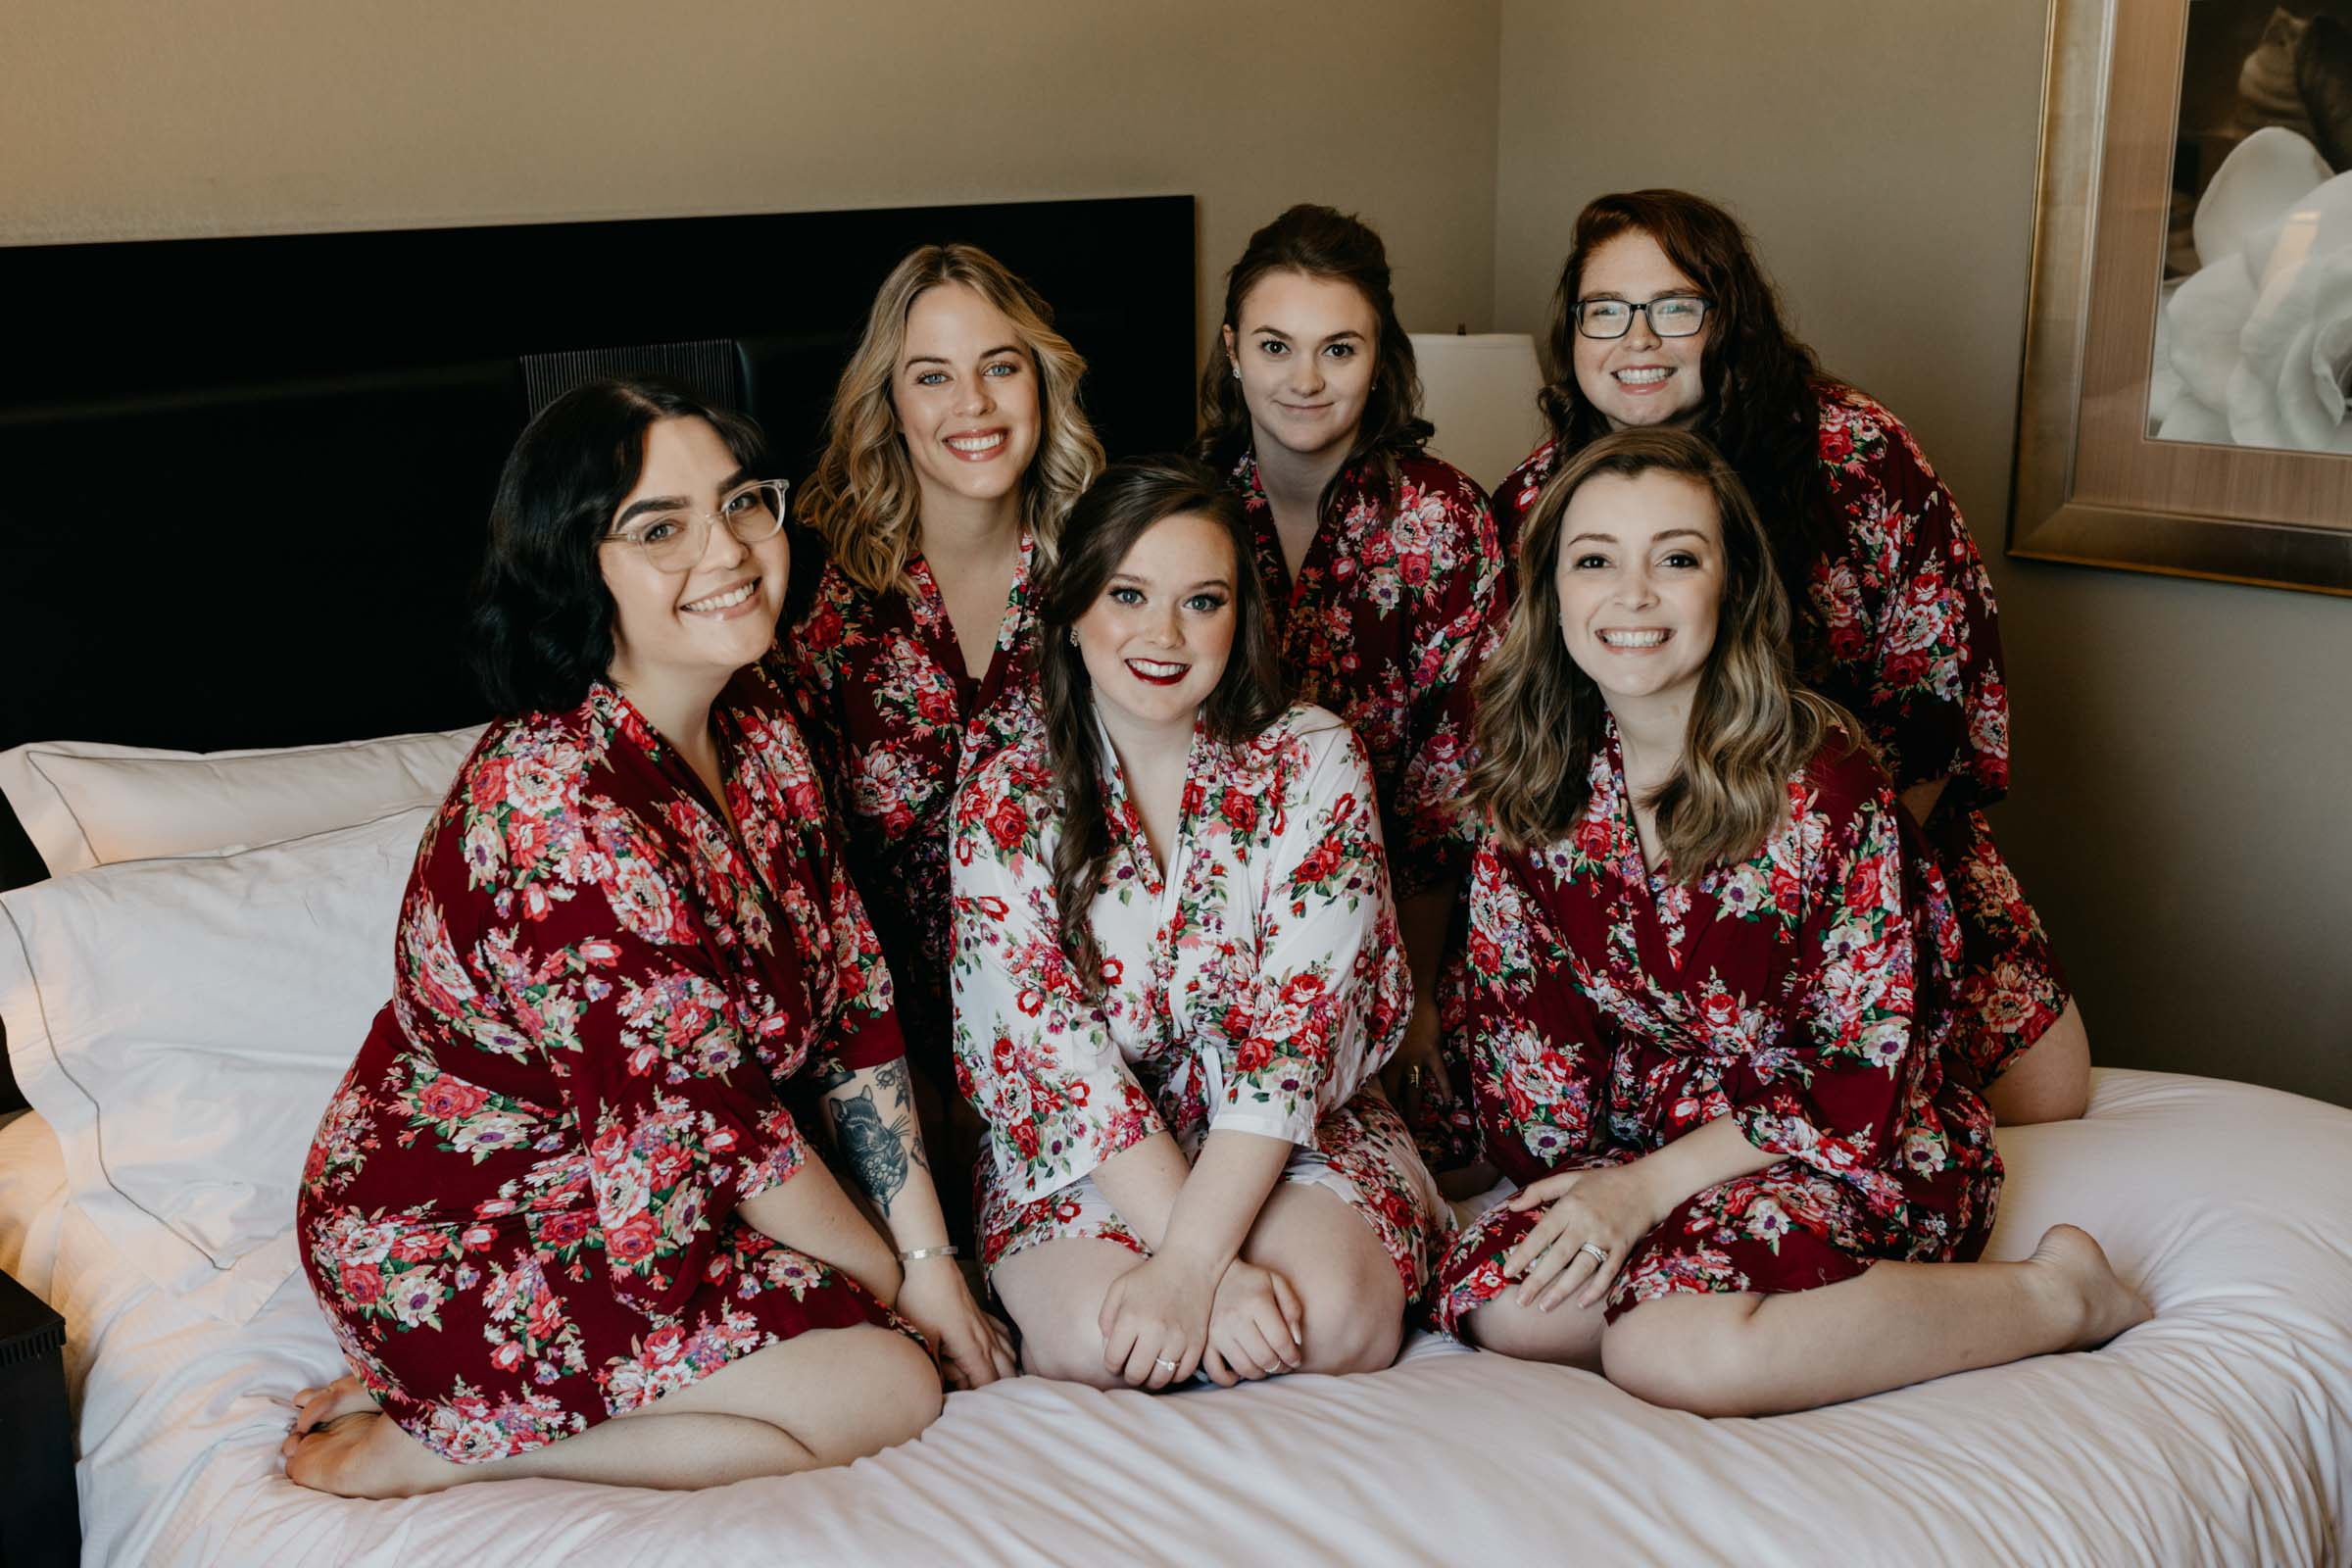 Adorabel bridal party wearing getting ready robes